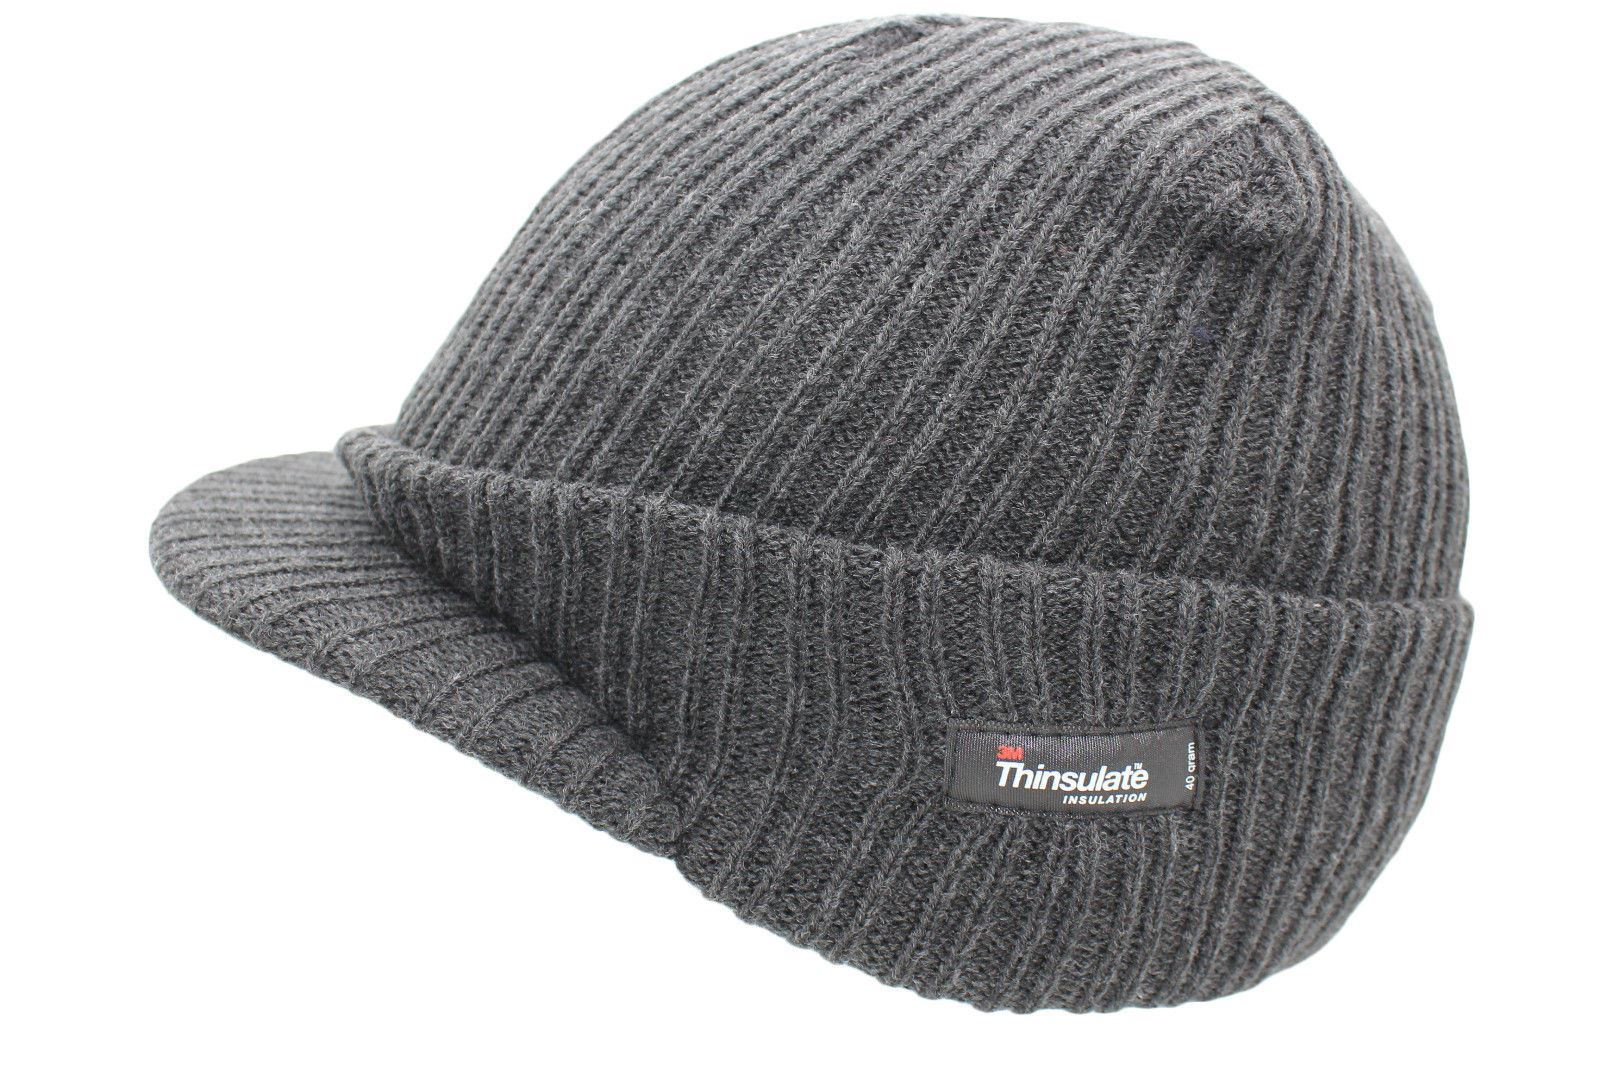 NEW UNISEX MENS AND LADIES PEAKED BEANIE THINSULATE THERMAL HAT c1270257c70